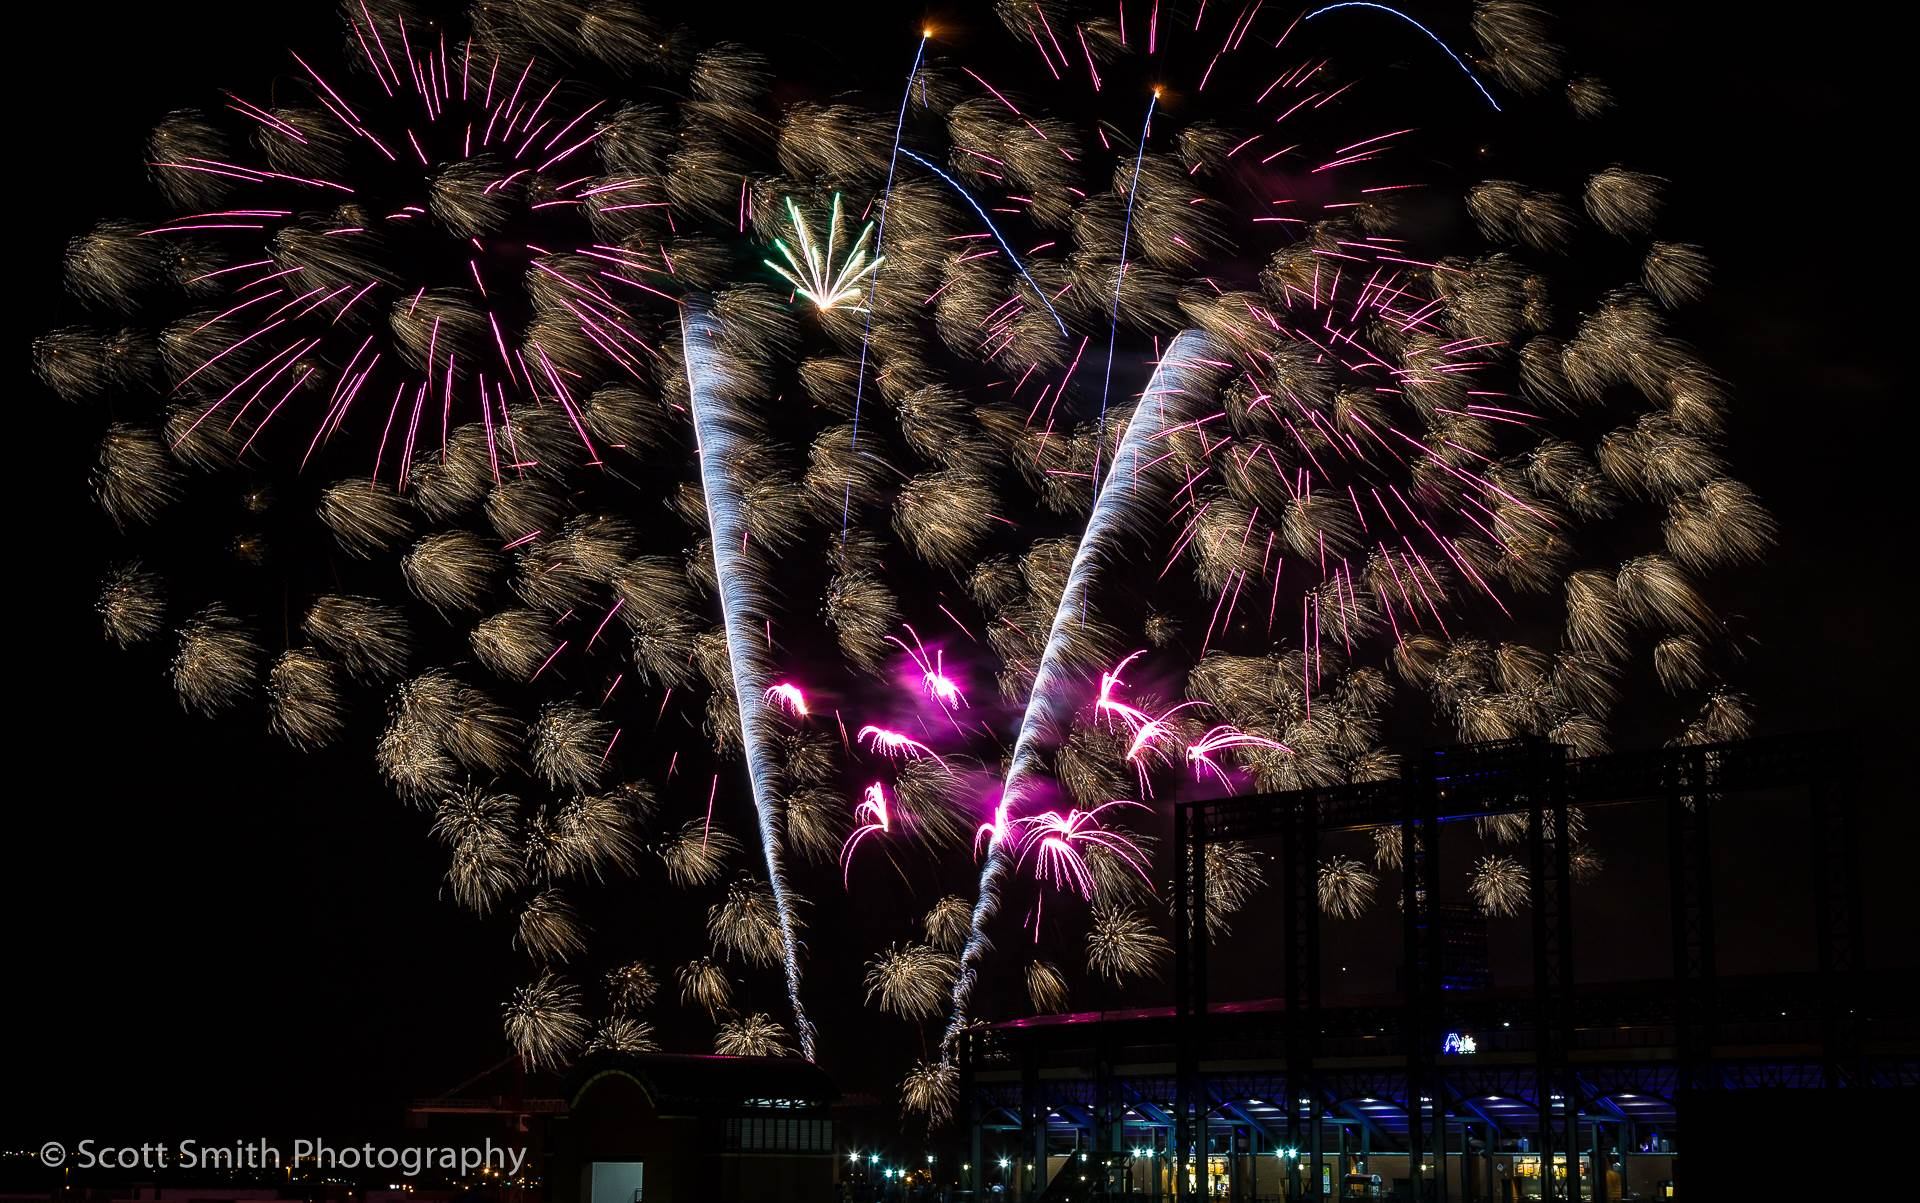 Fireworks over Coors Field 4 - Fourth of July fireworks over Coors Field after a Colorado Rockies game. by D Scott Smith